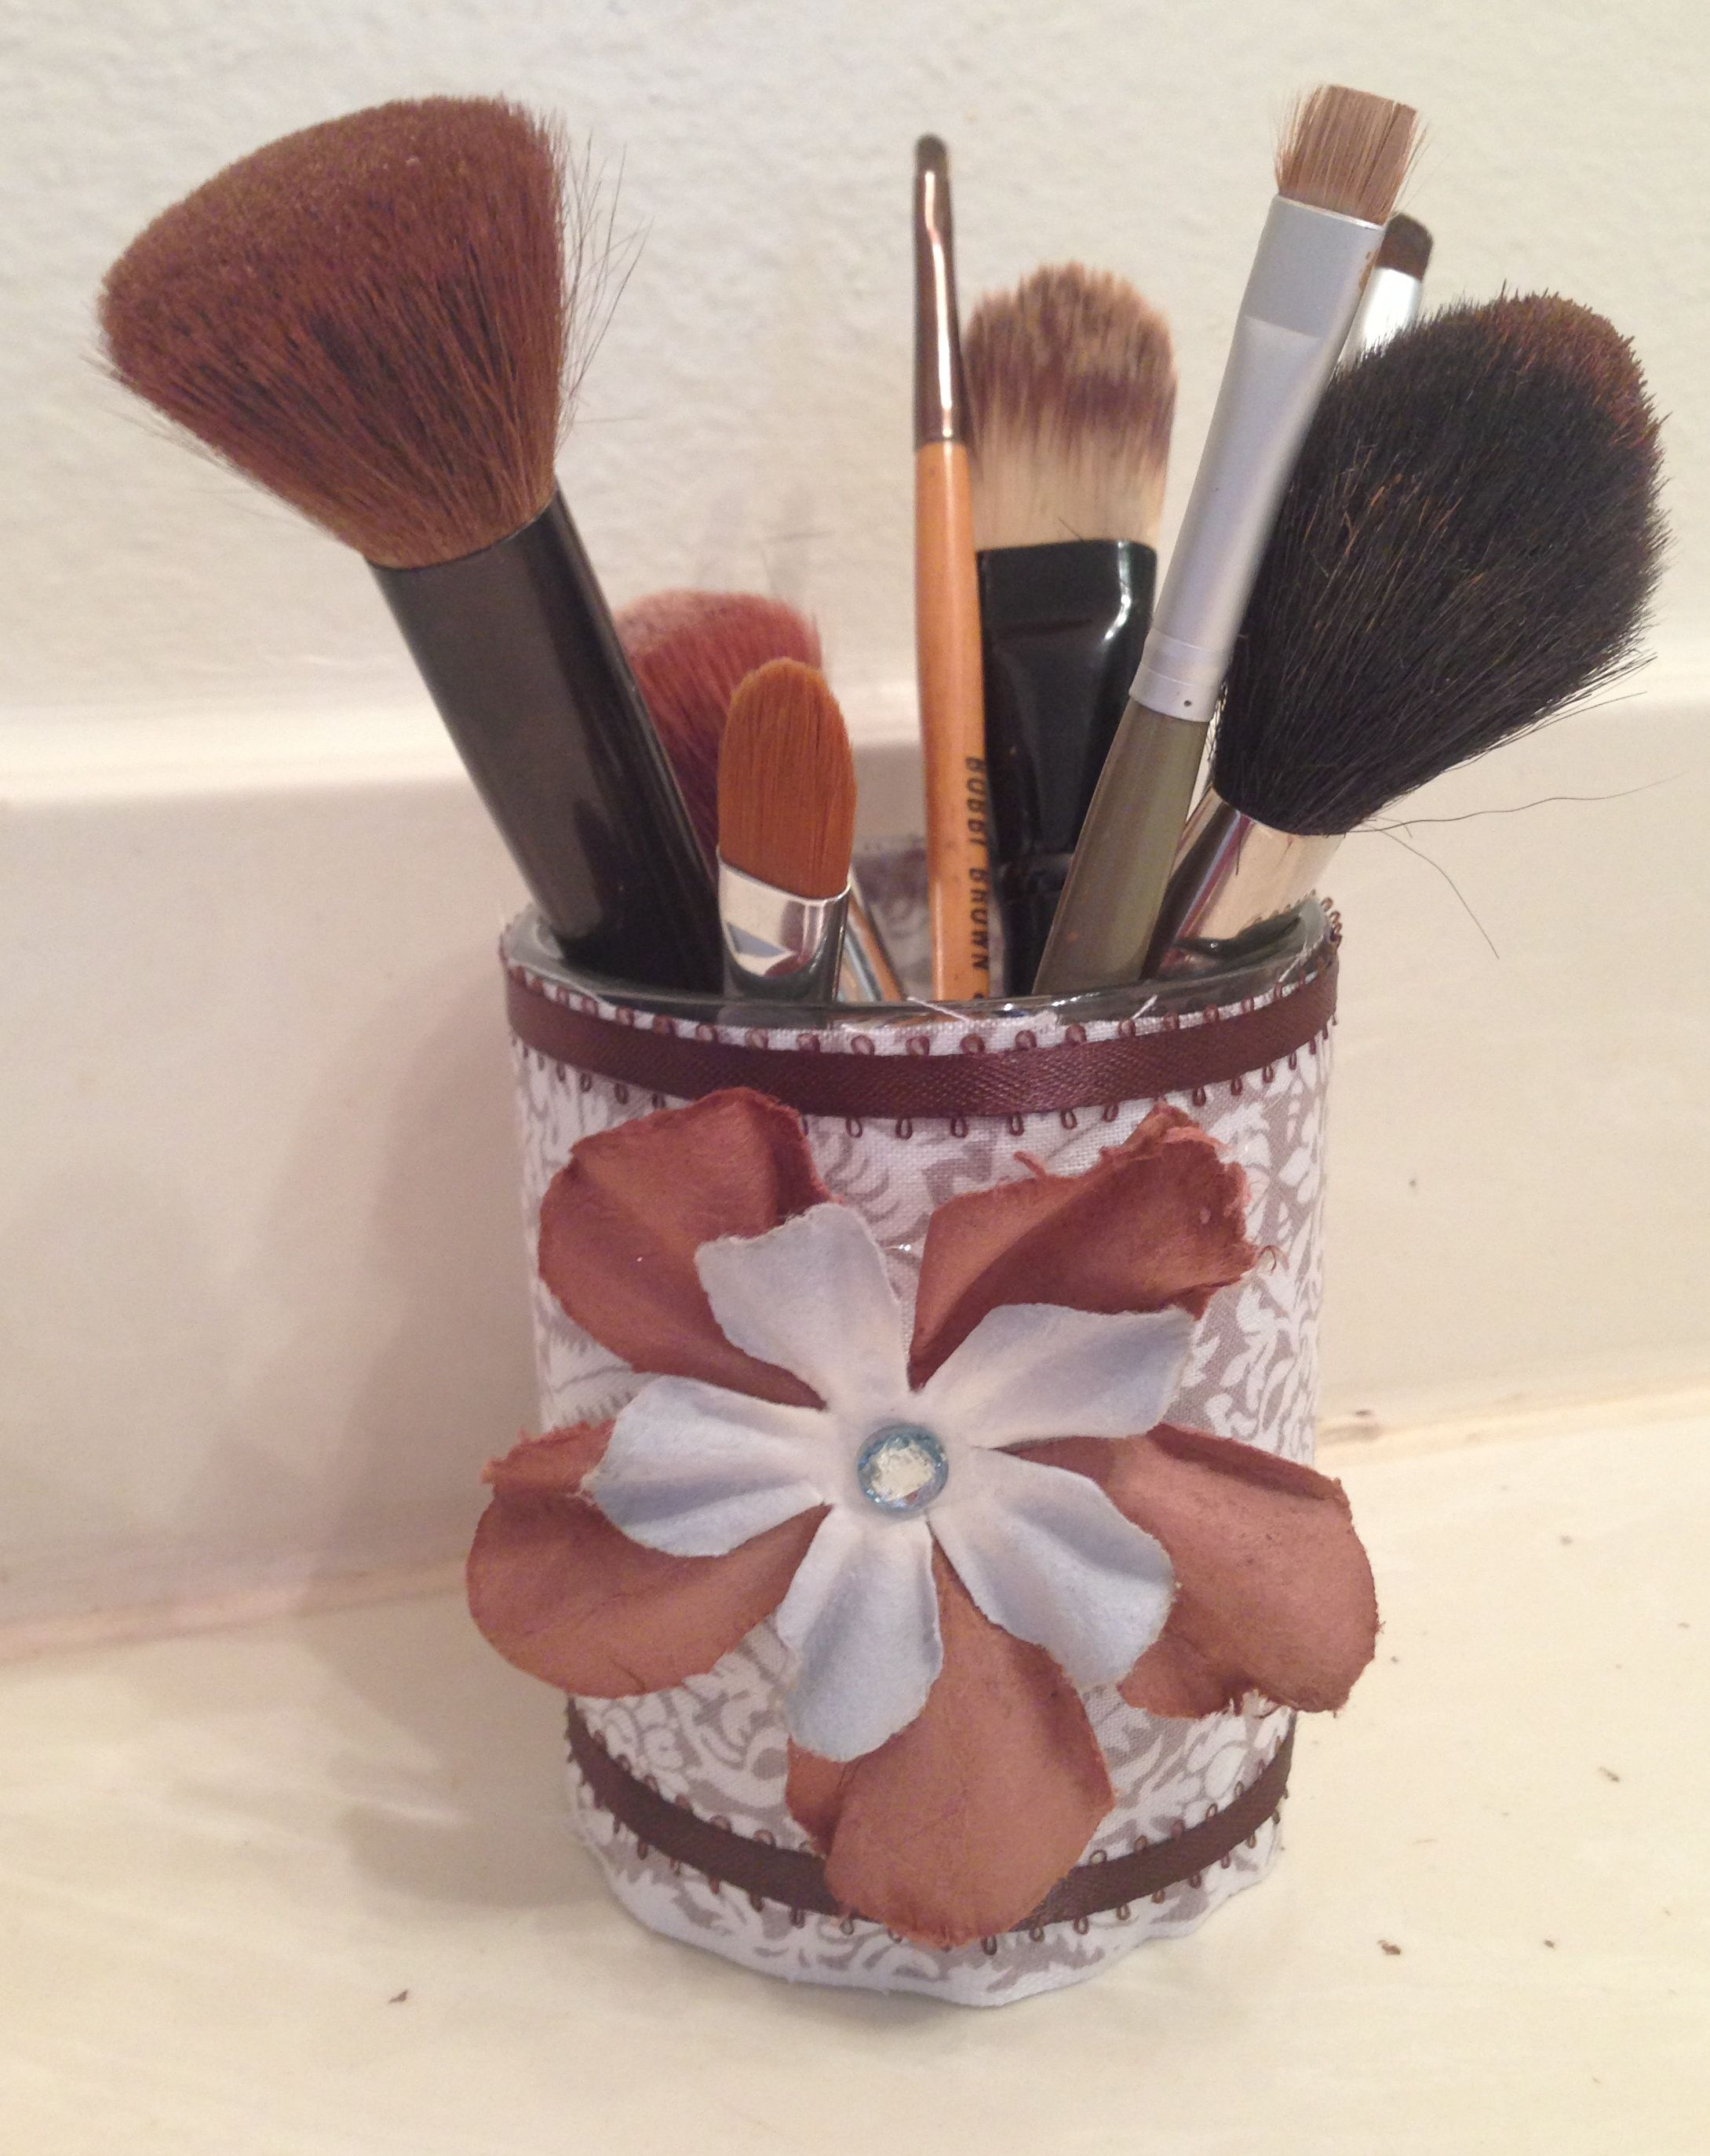 MY DIY project makeup brush holder. Materialrecycled